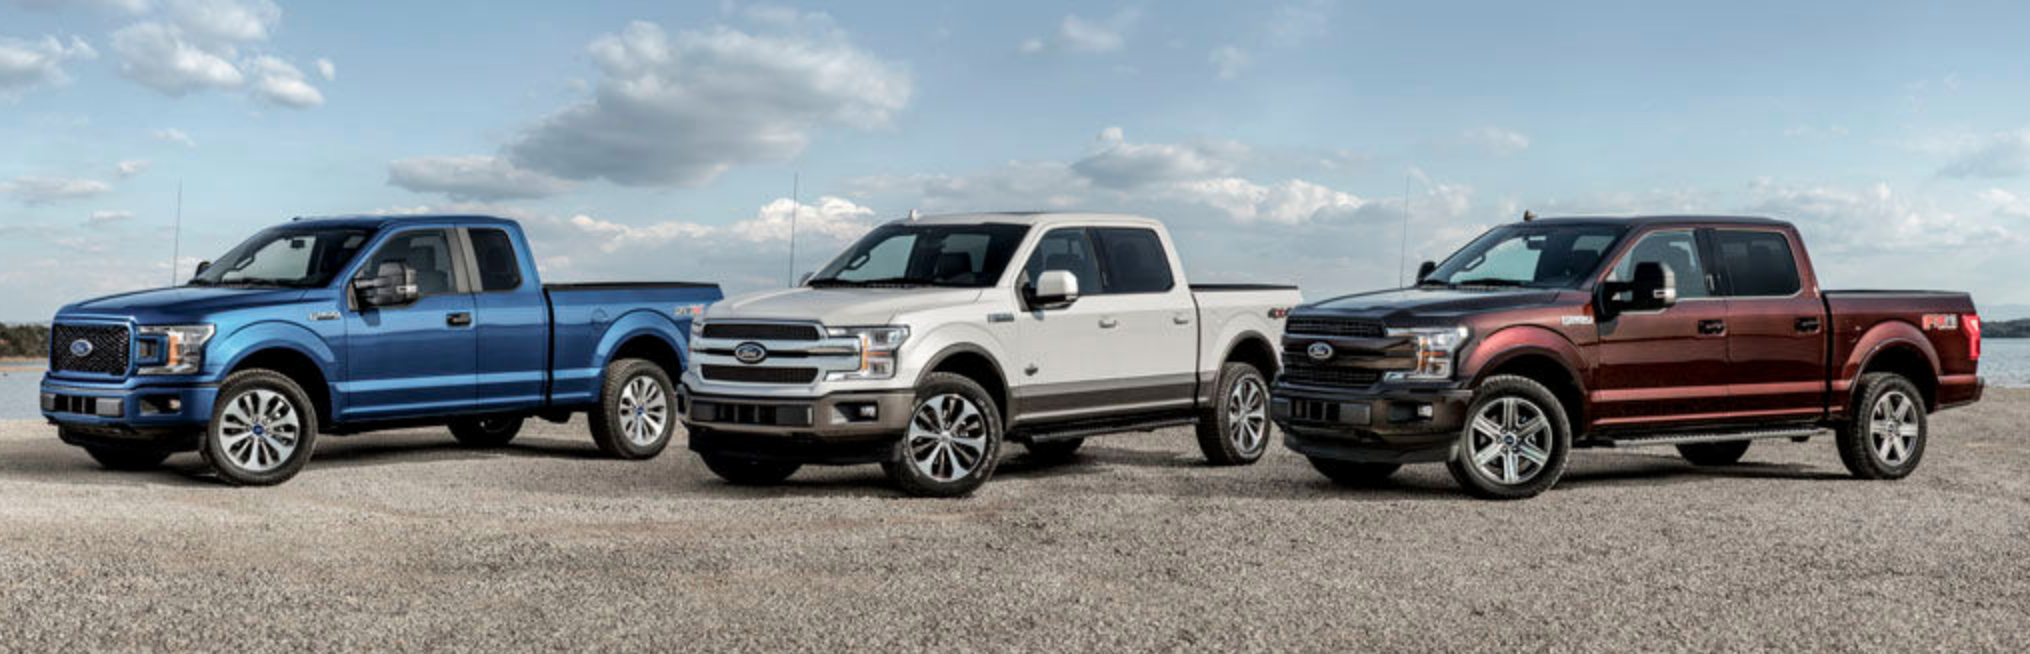 2018 Ford F150 Options